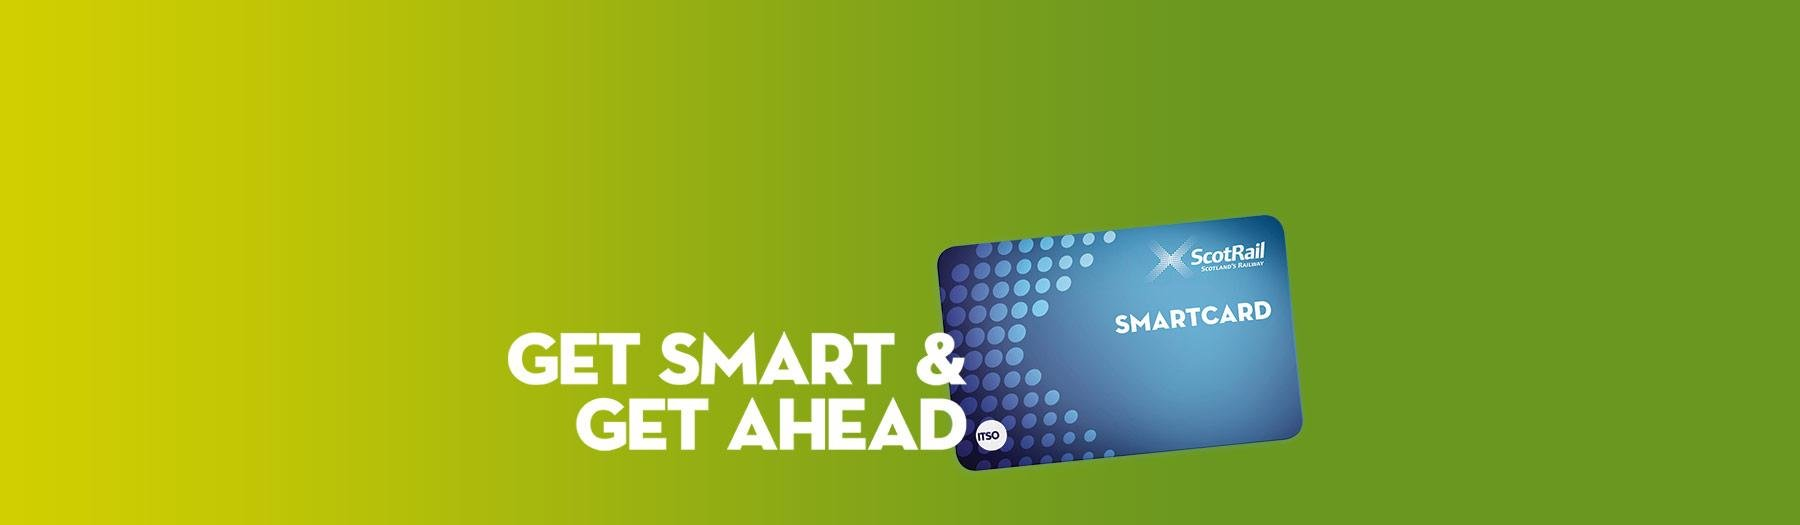 Get Smart and get ahead with a ScotRail Smartcard